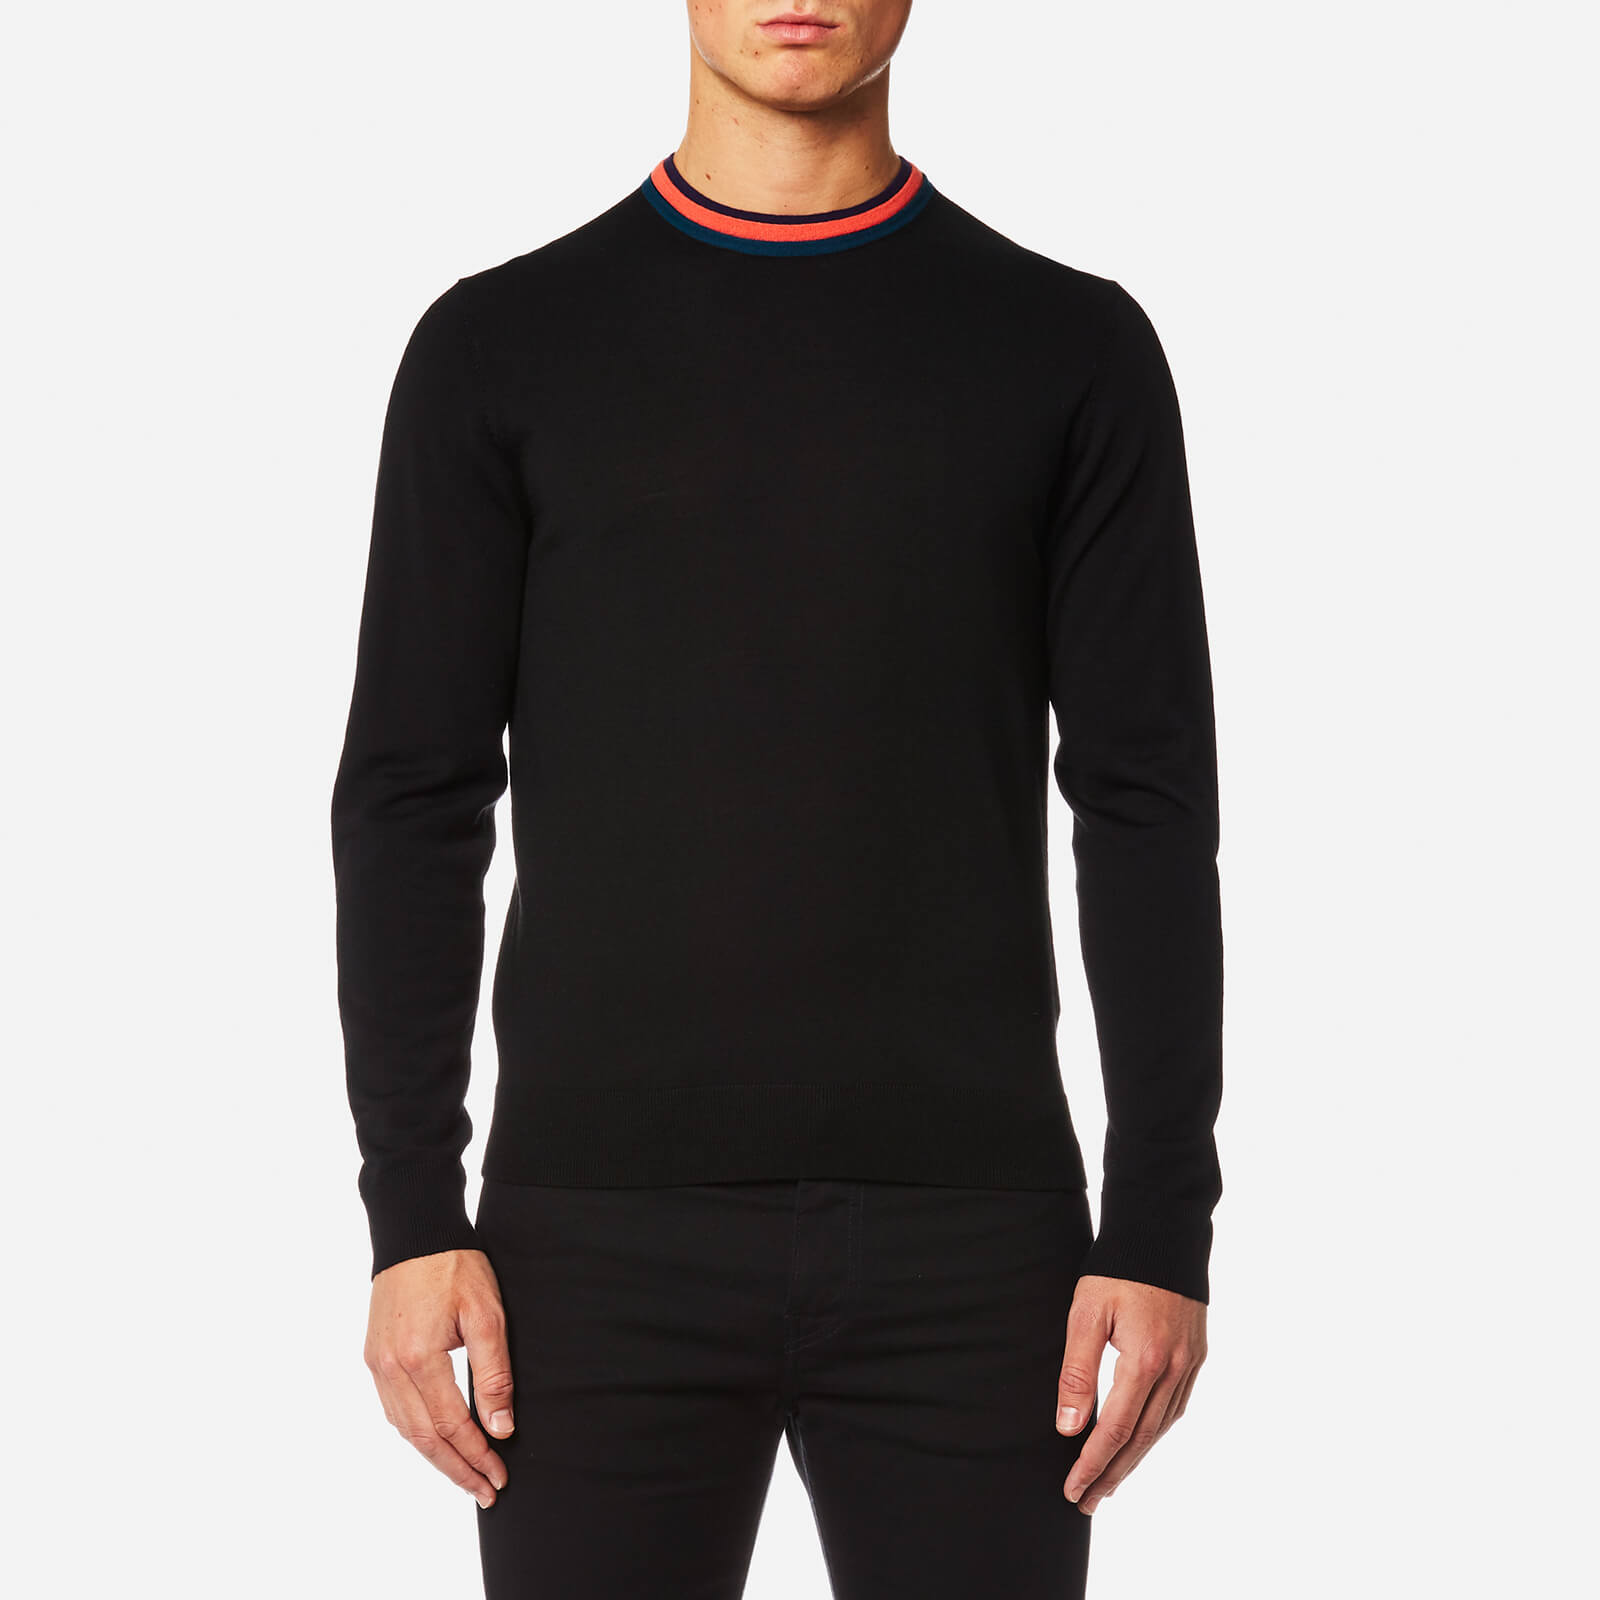 621d70961e6c89 PS by Paul Smith Men's Collar Detail Knitted Jumper - Black - Free UK  Delivery over £50